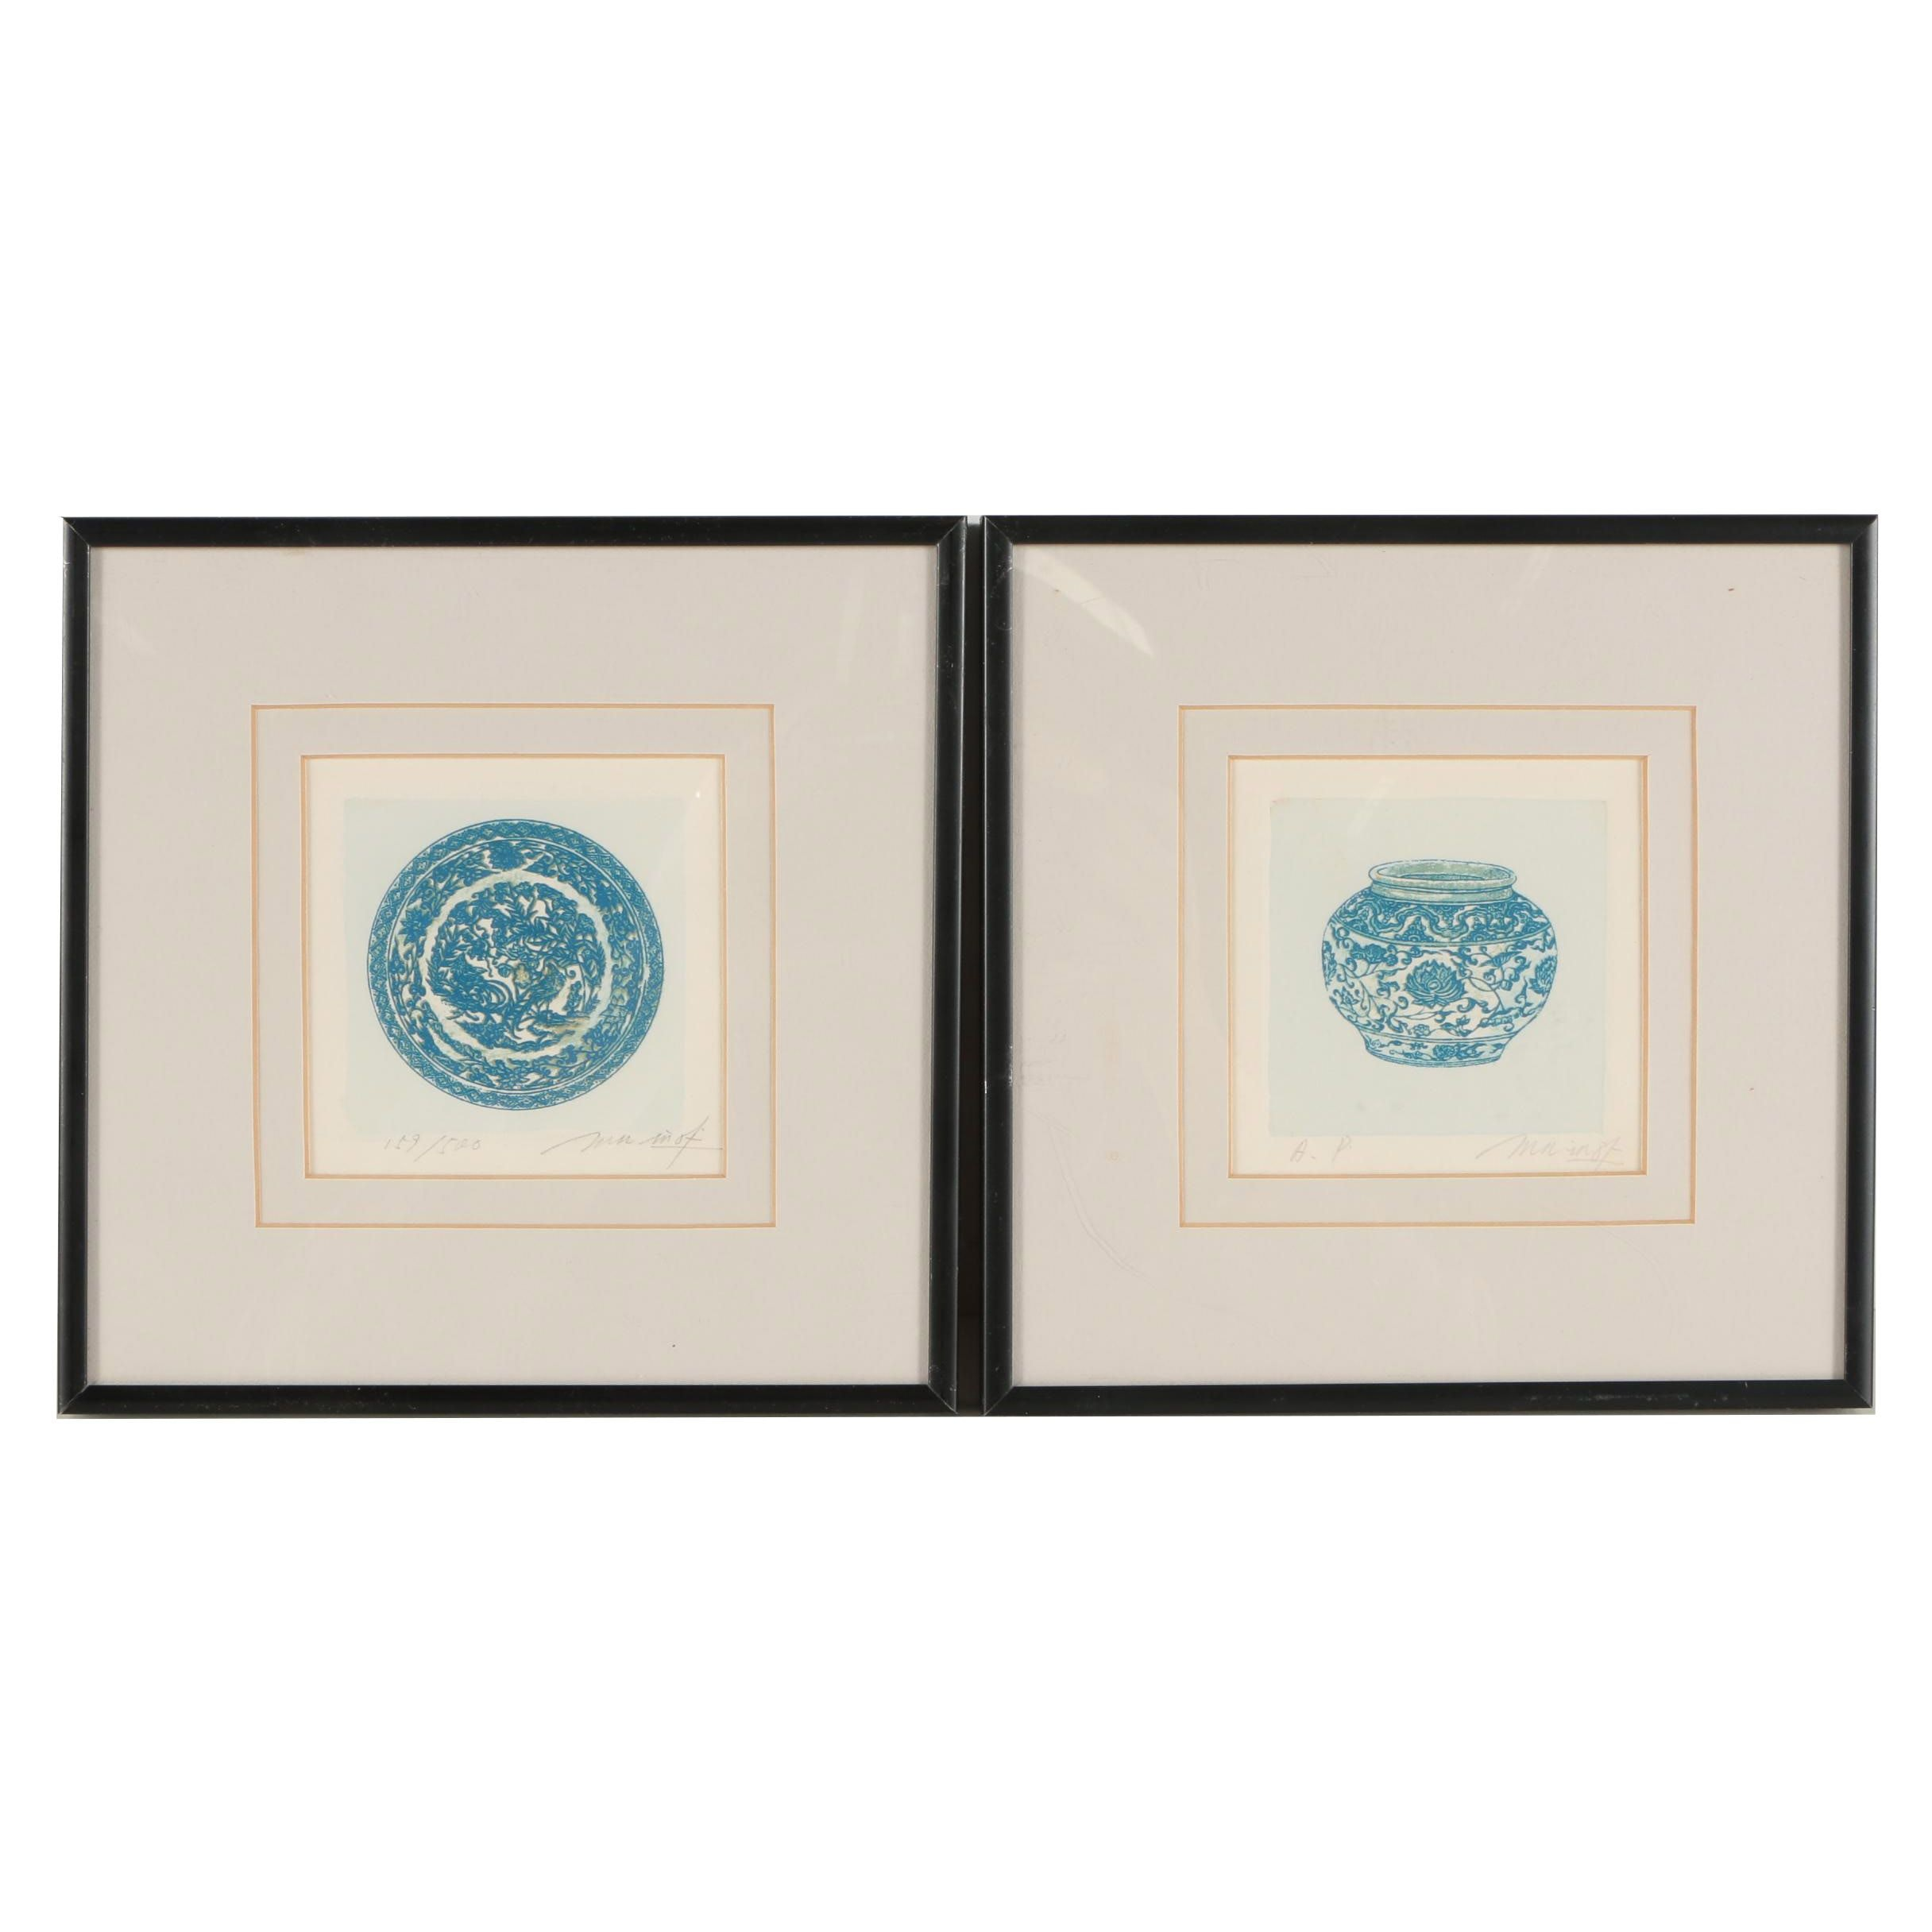 Color Etchings of Chinese Ceramic Pieces